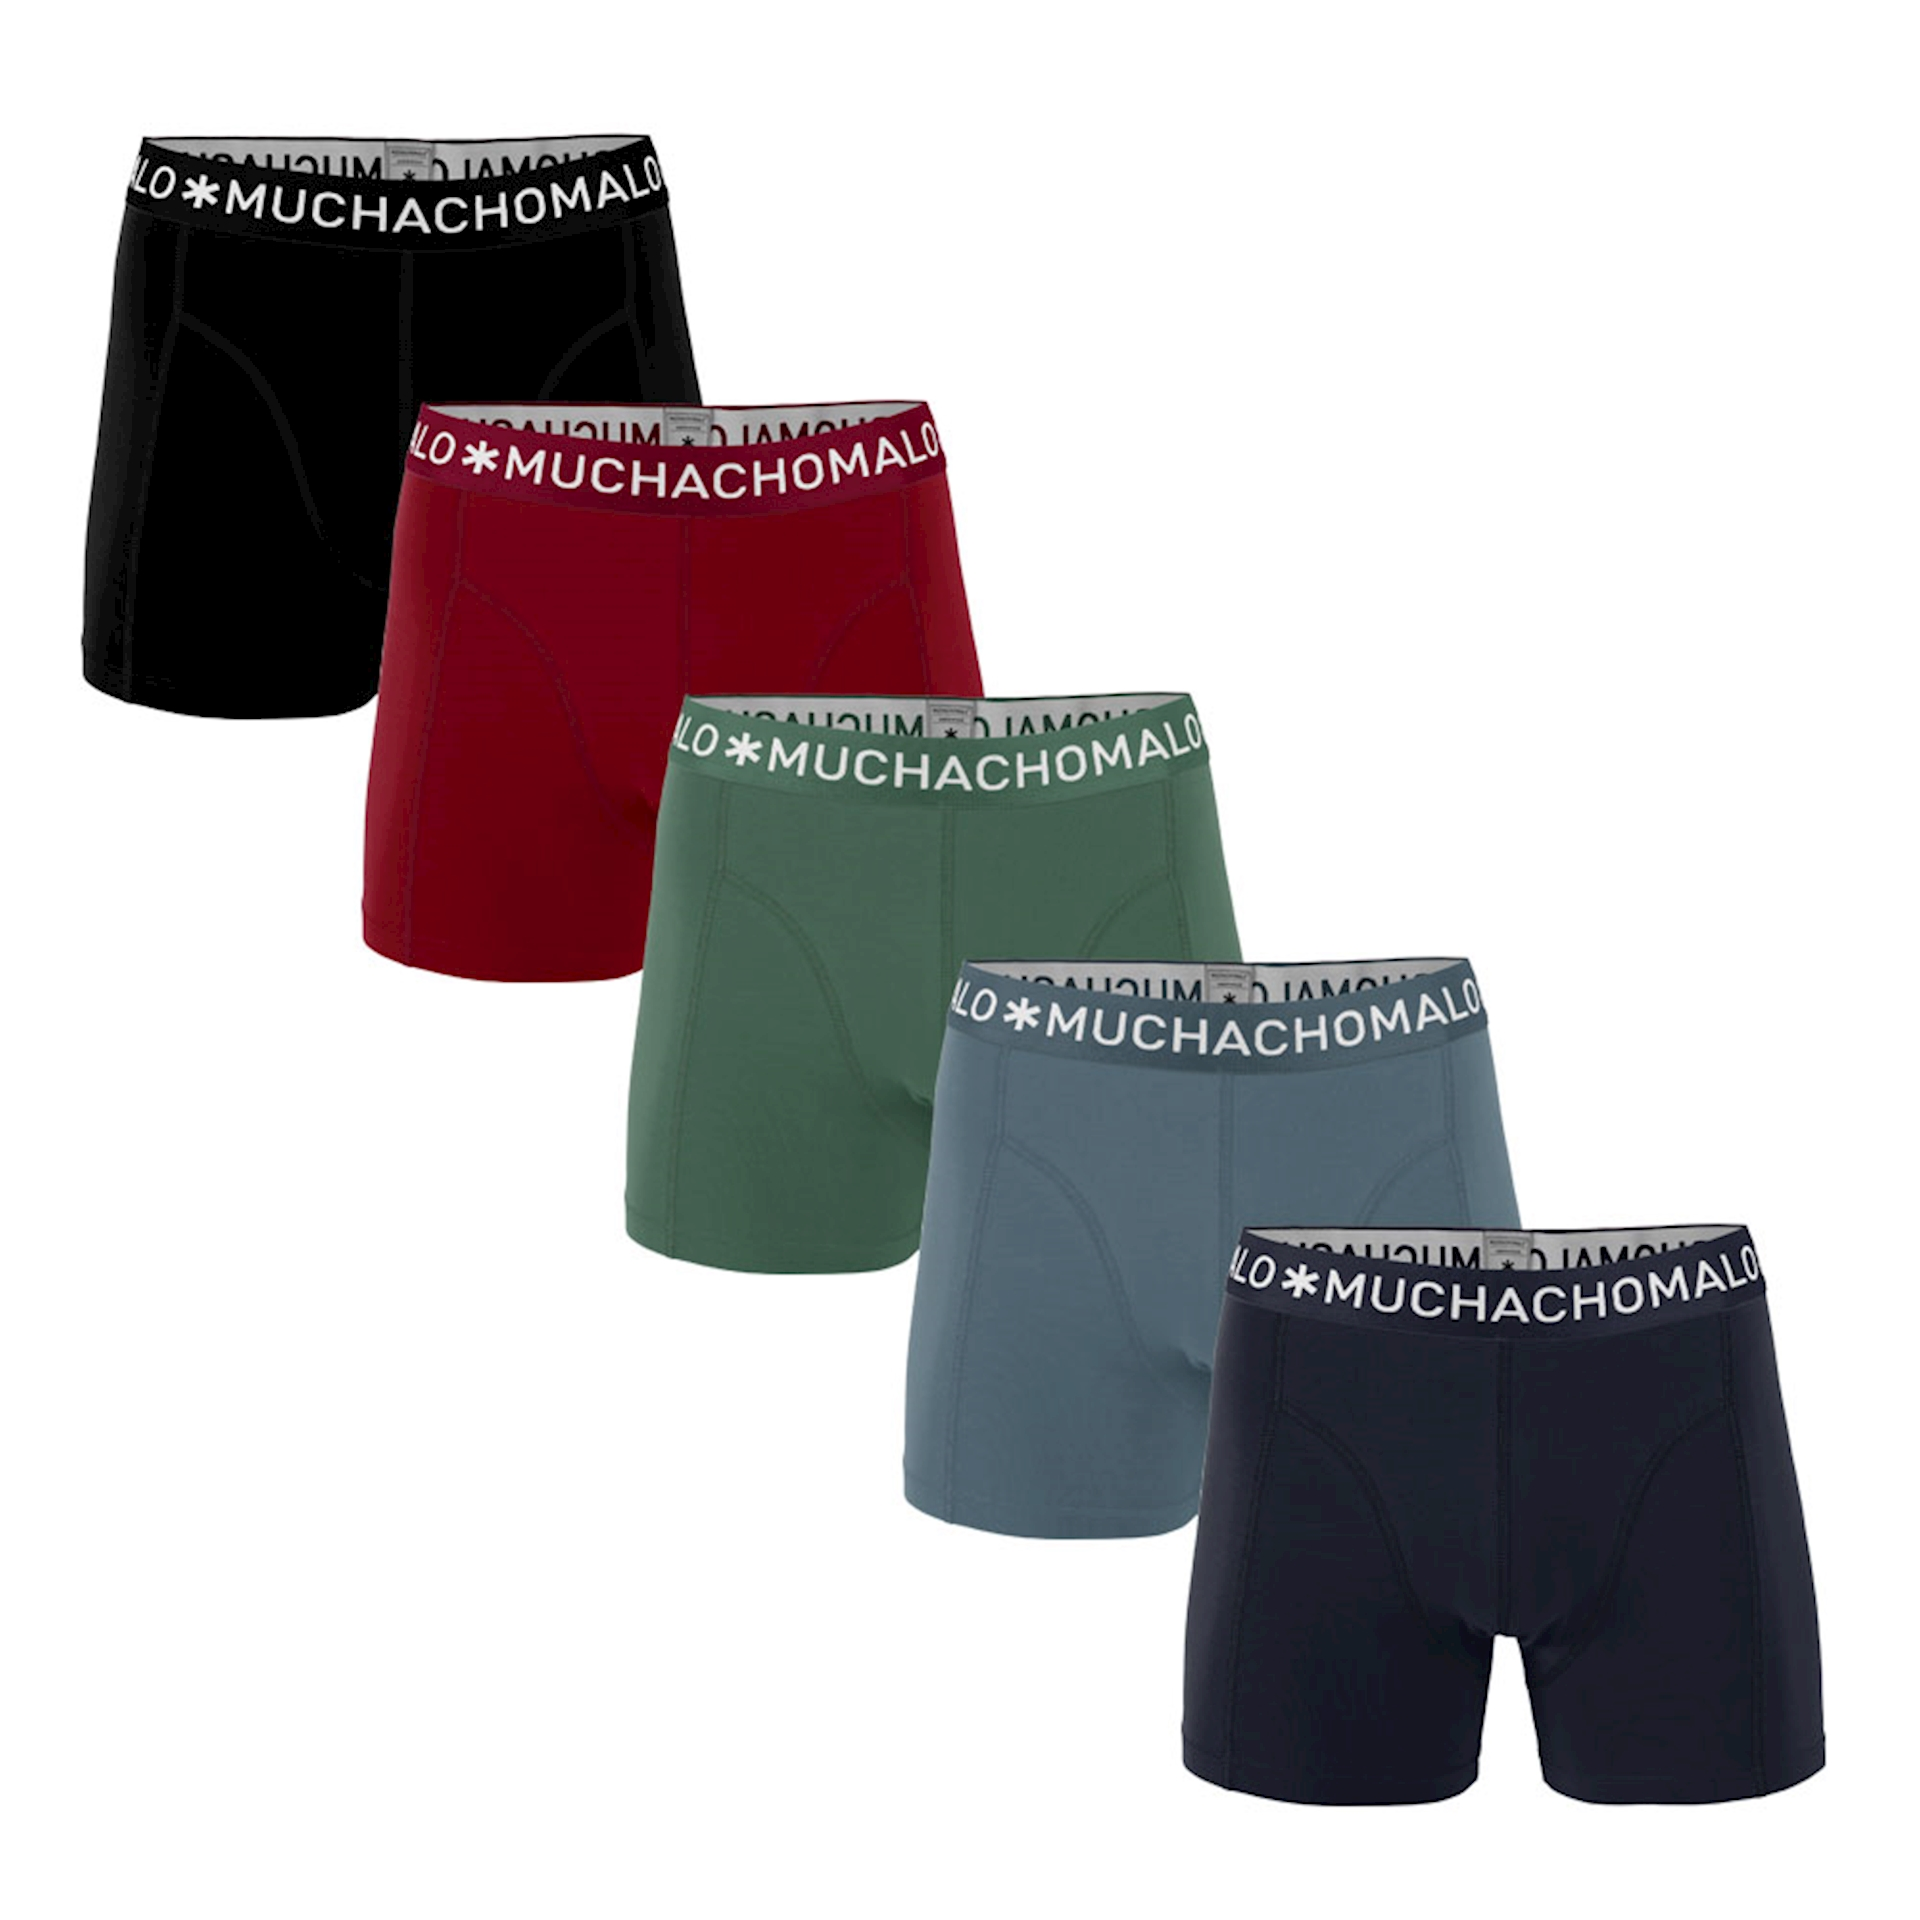 Muchachomalo Boxershorts Solid Navy Grey/Blue/Army Red/Black 5-pack-S